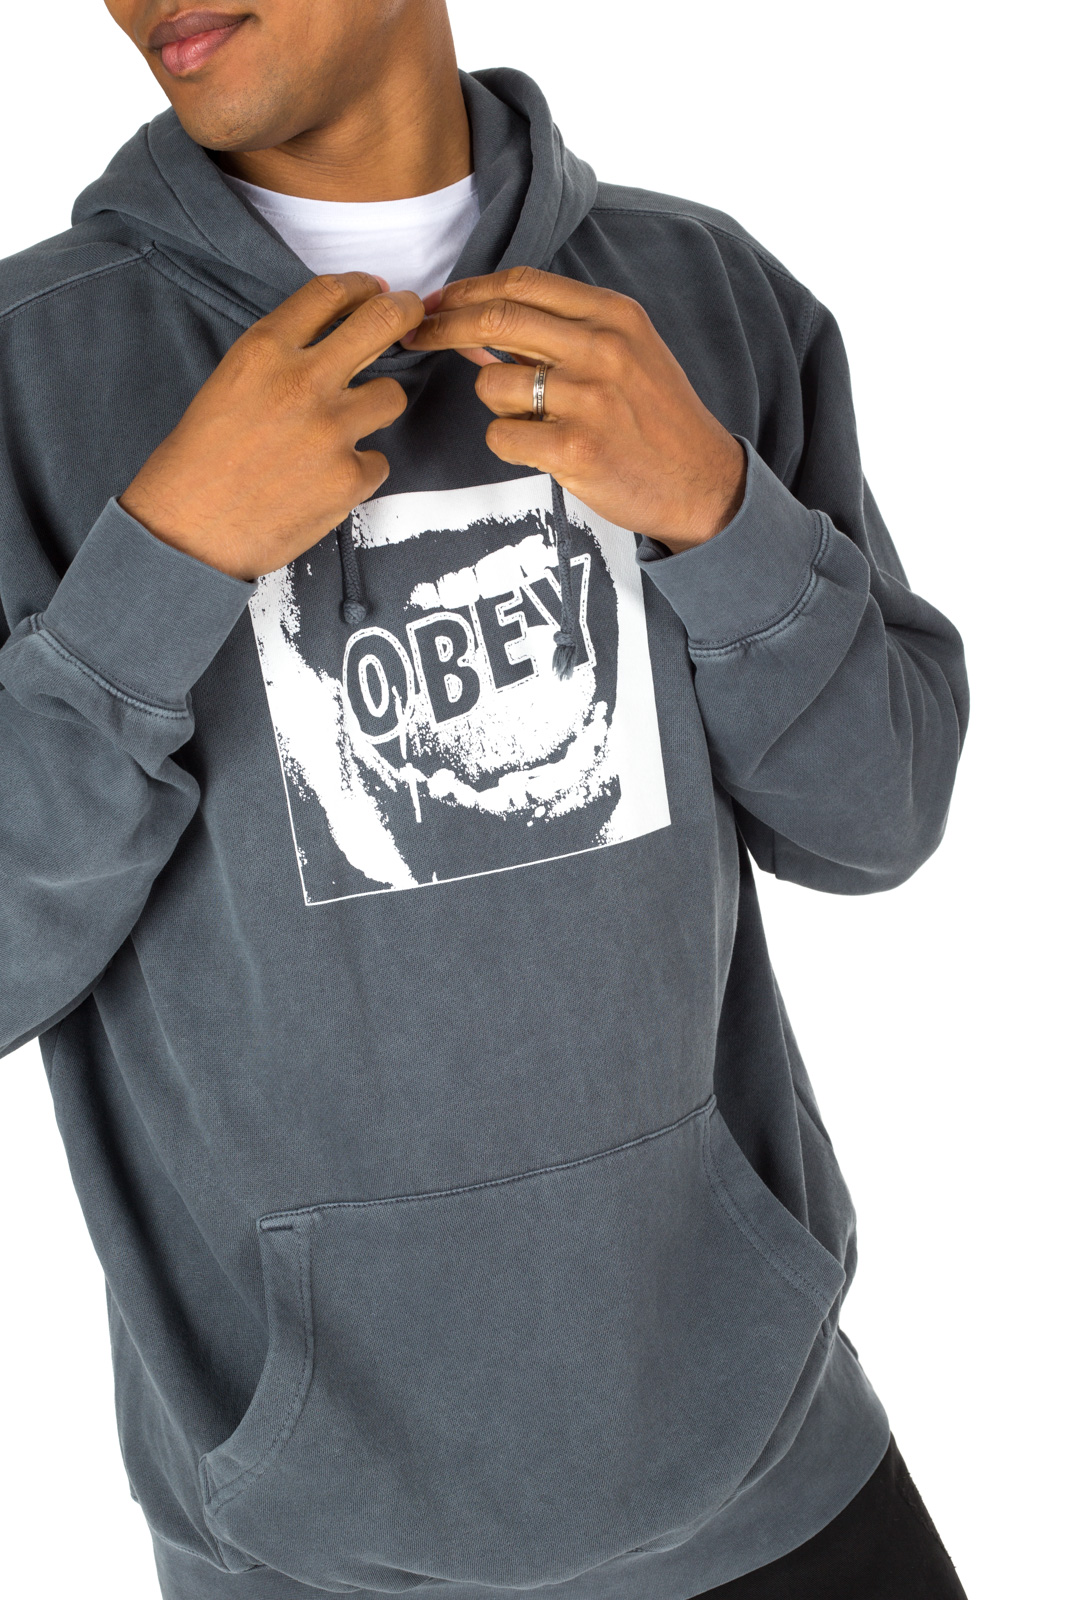 Obey - Felpa Screamer Grigia